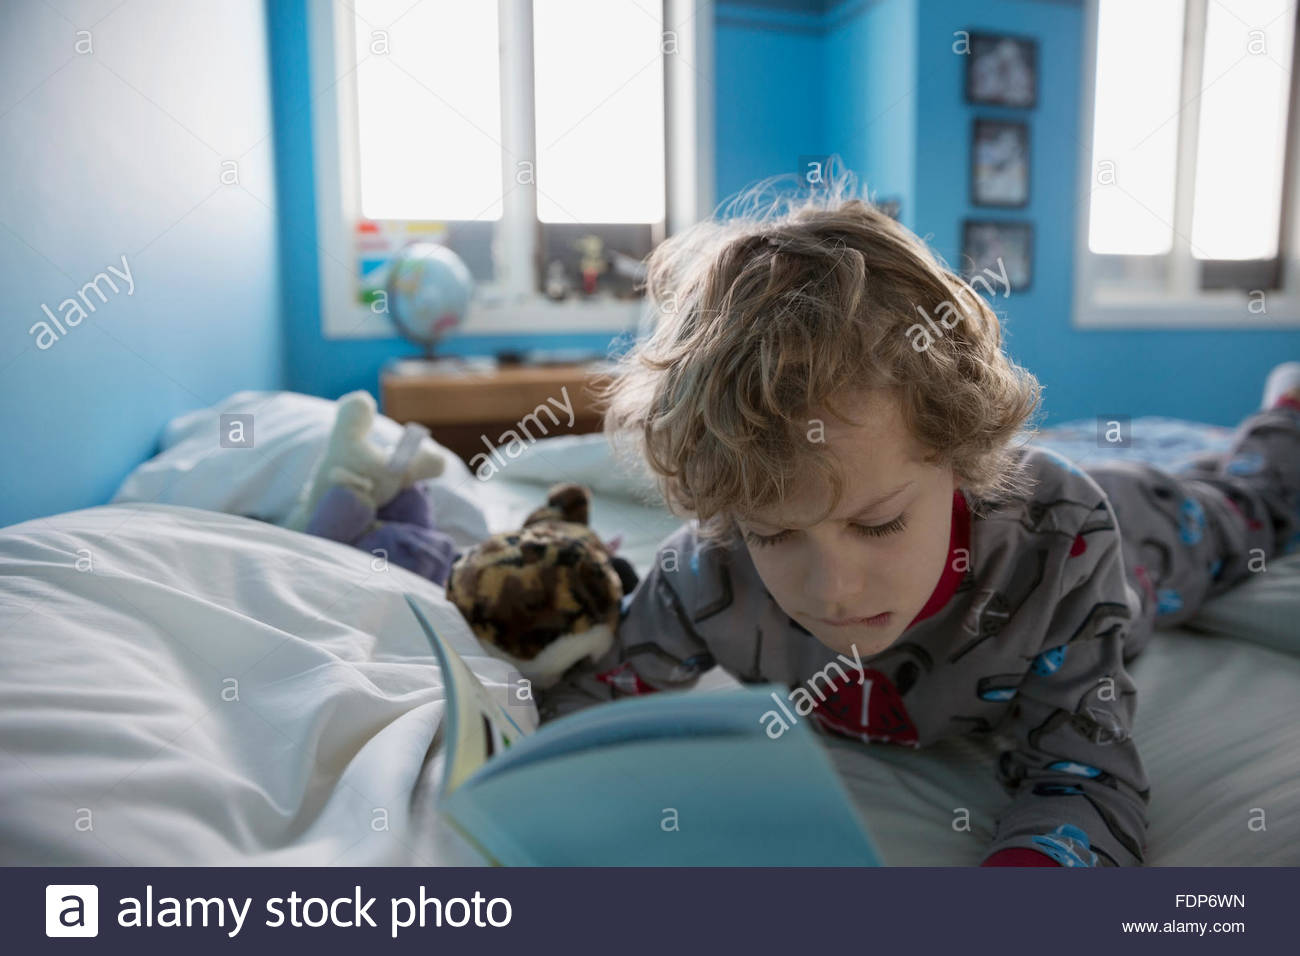 Boy in pajamas reading book on bed - Stock Image